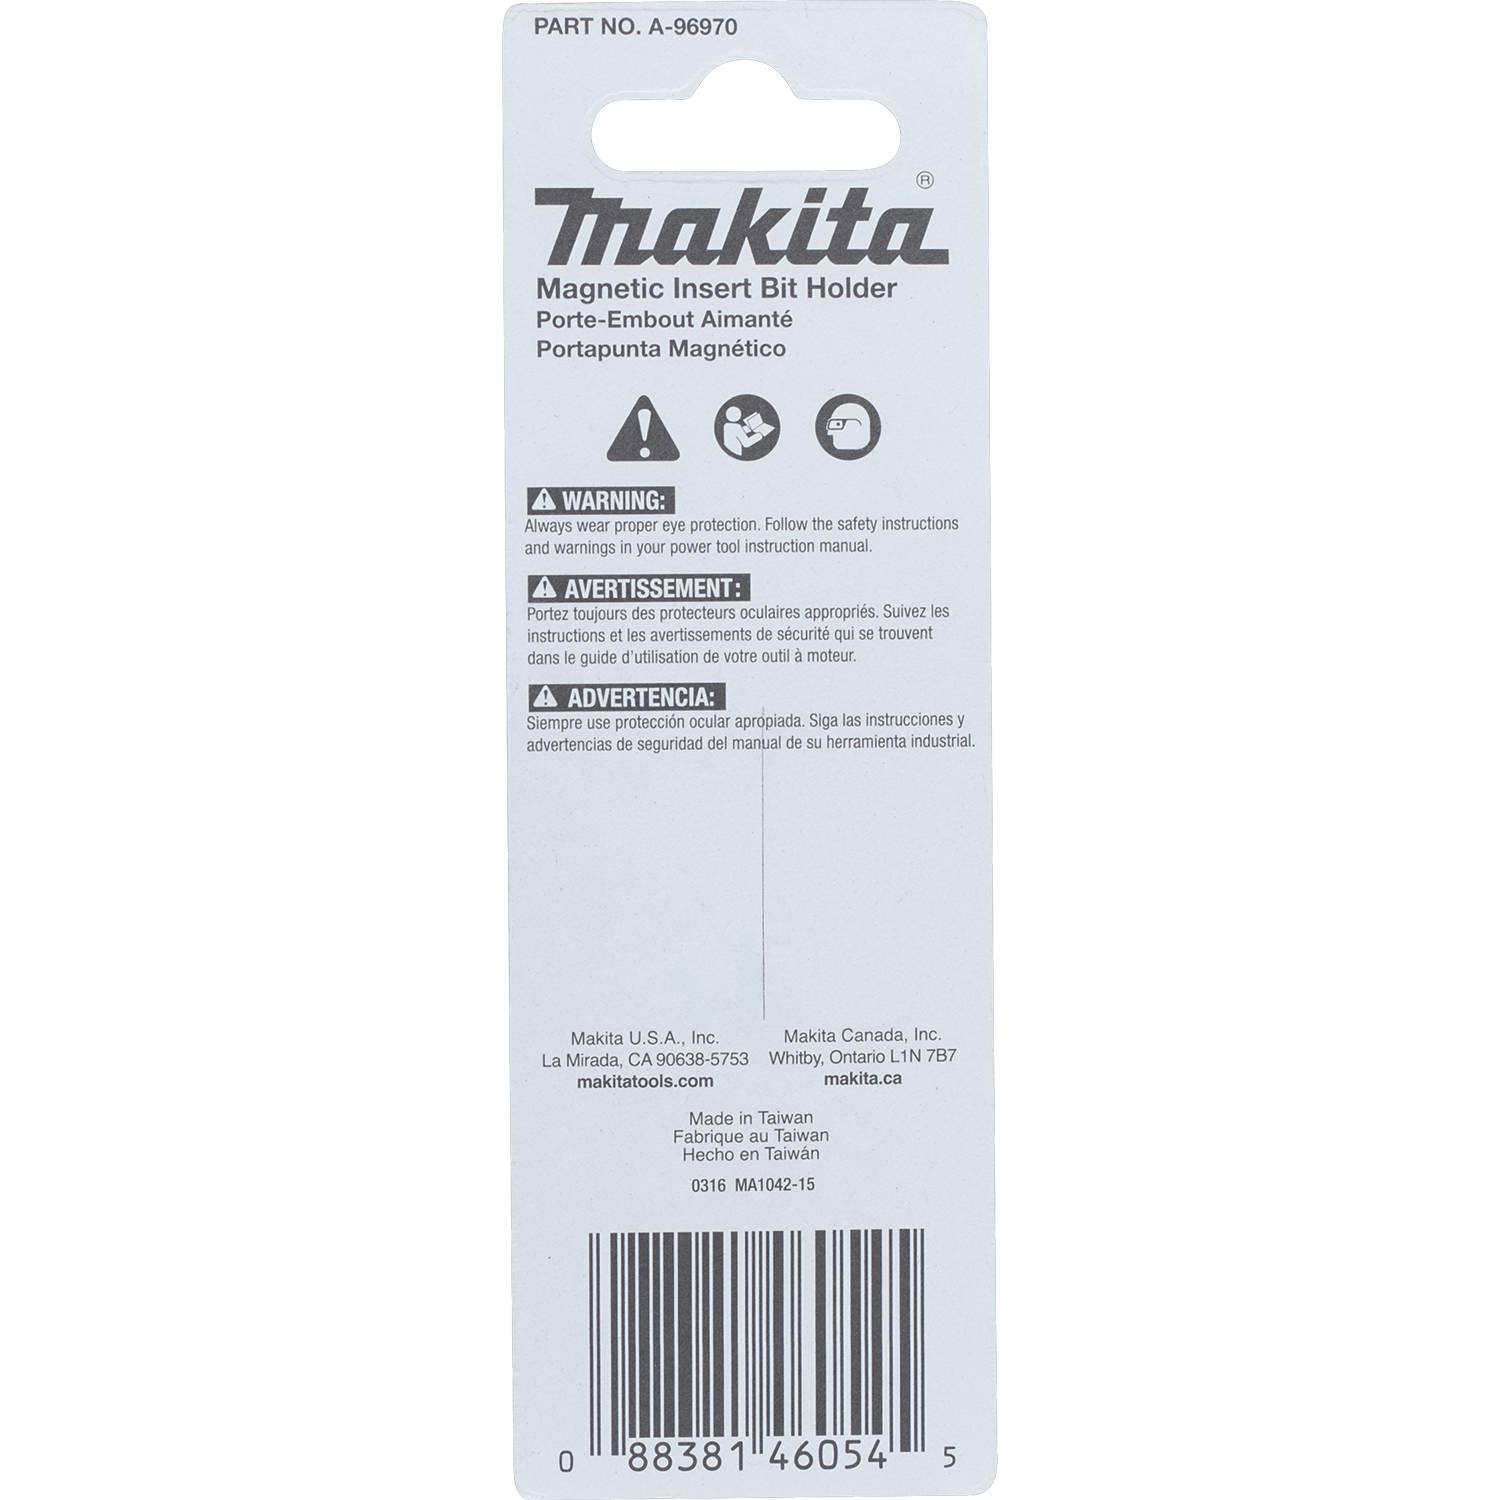 Makita A-96970 Impactx 2-3/8″ Onepiece Magnetic Insert Bit Holder - - Amazon.com